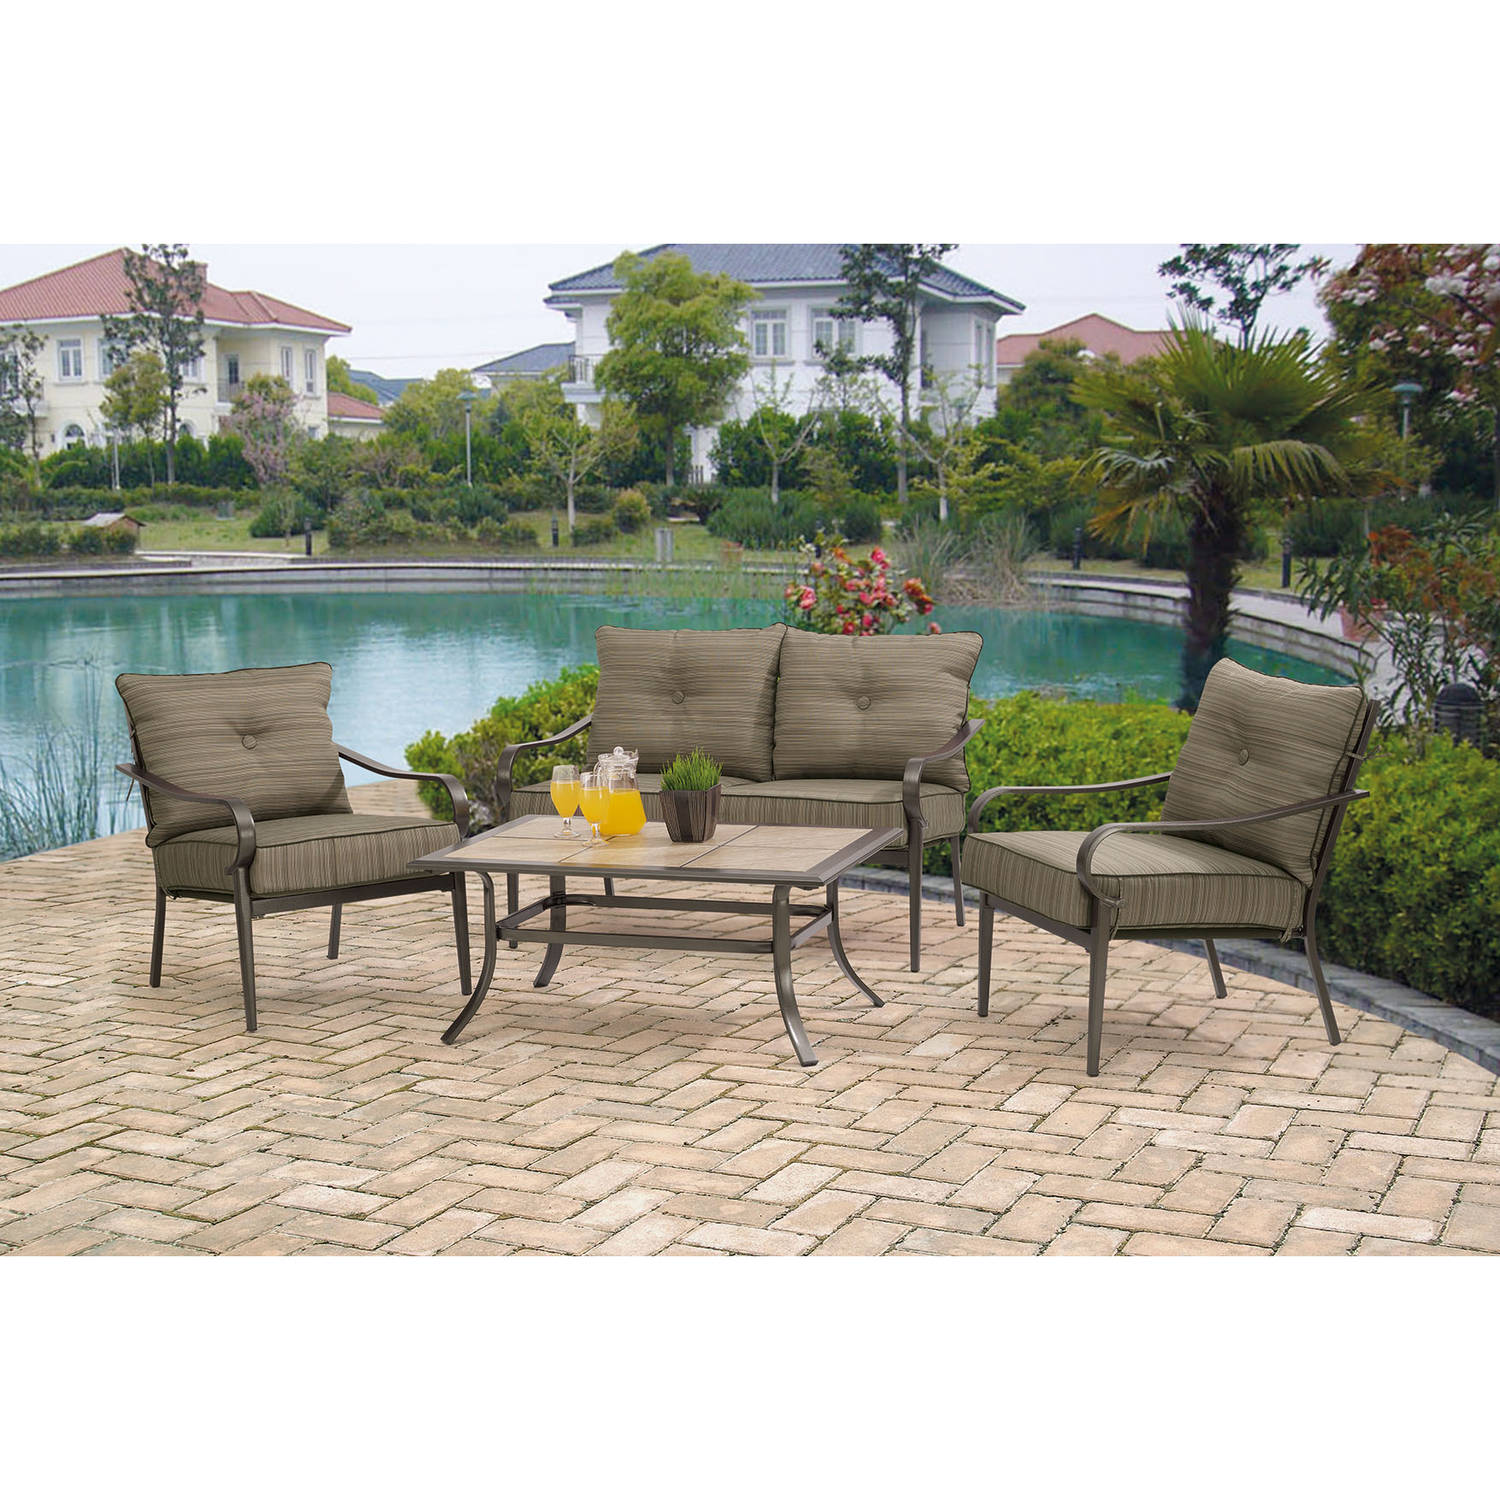 Mainstays Charleston Park 4-Piece Patio Set, Brown